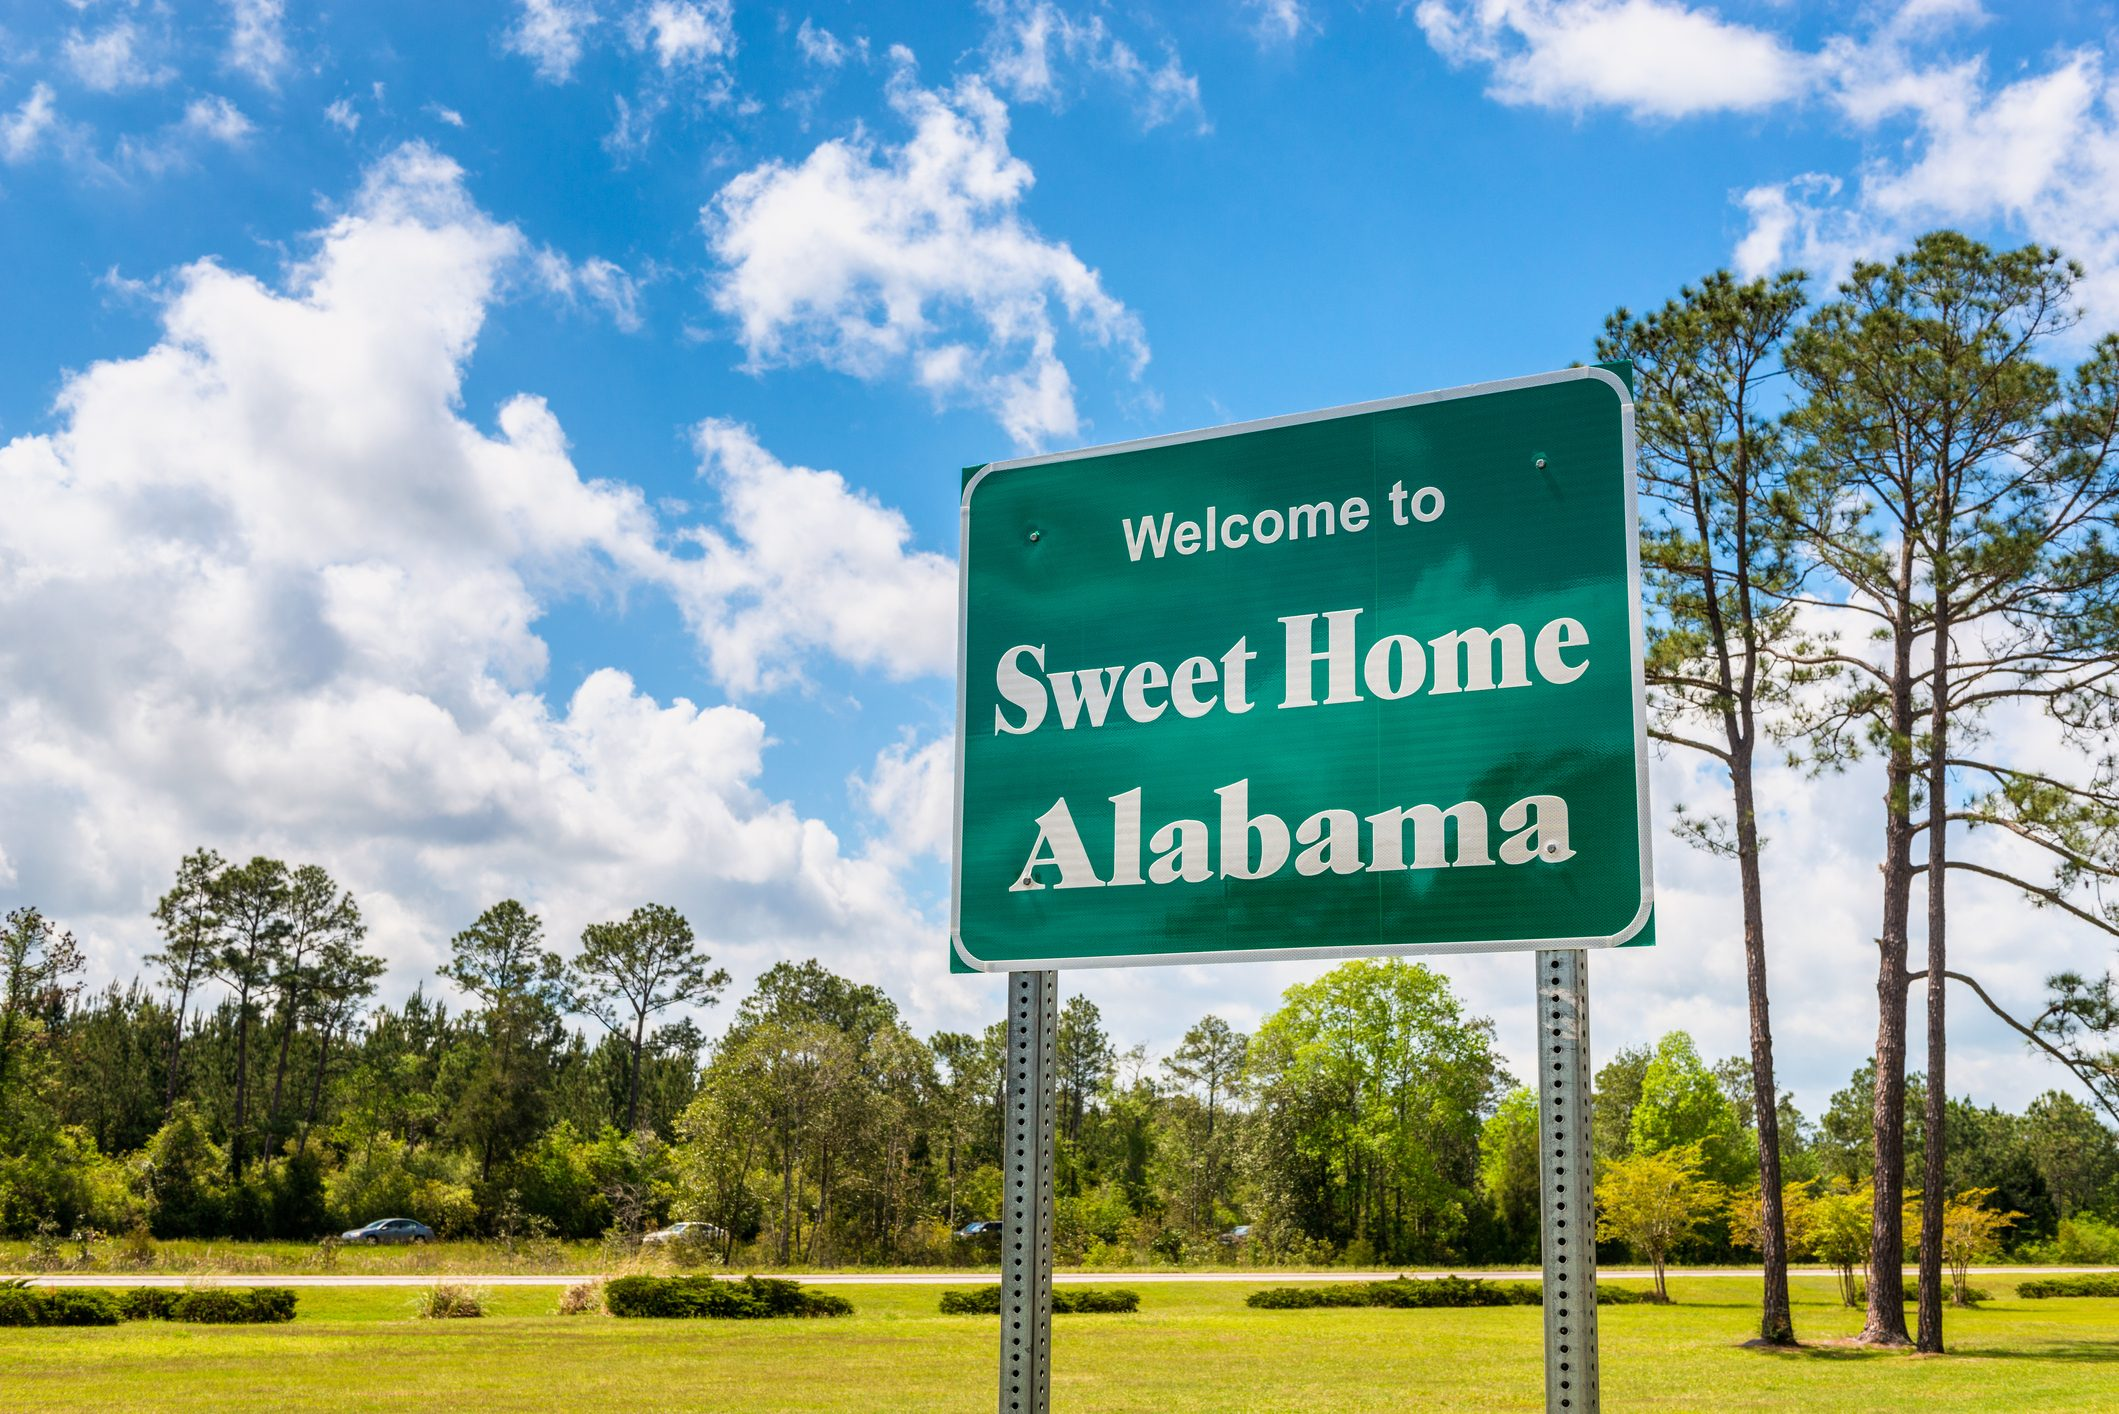 Welcome to Sweet Home Alabama Road Sign in Alabama USA